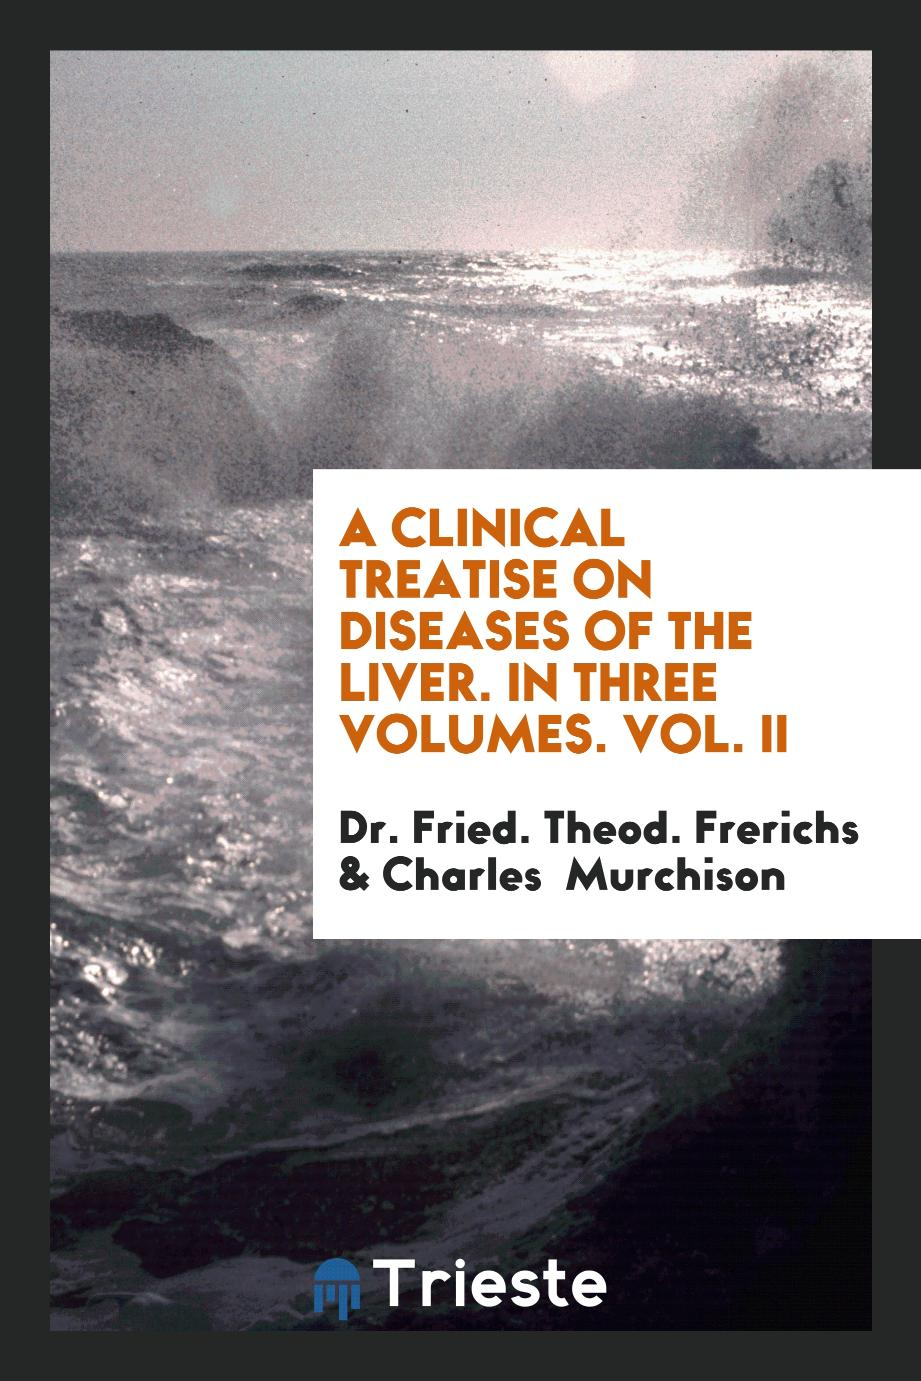 A Clinical Treatise on Diseases of the Liver. In Three Volumes. Vol. II